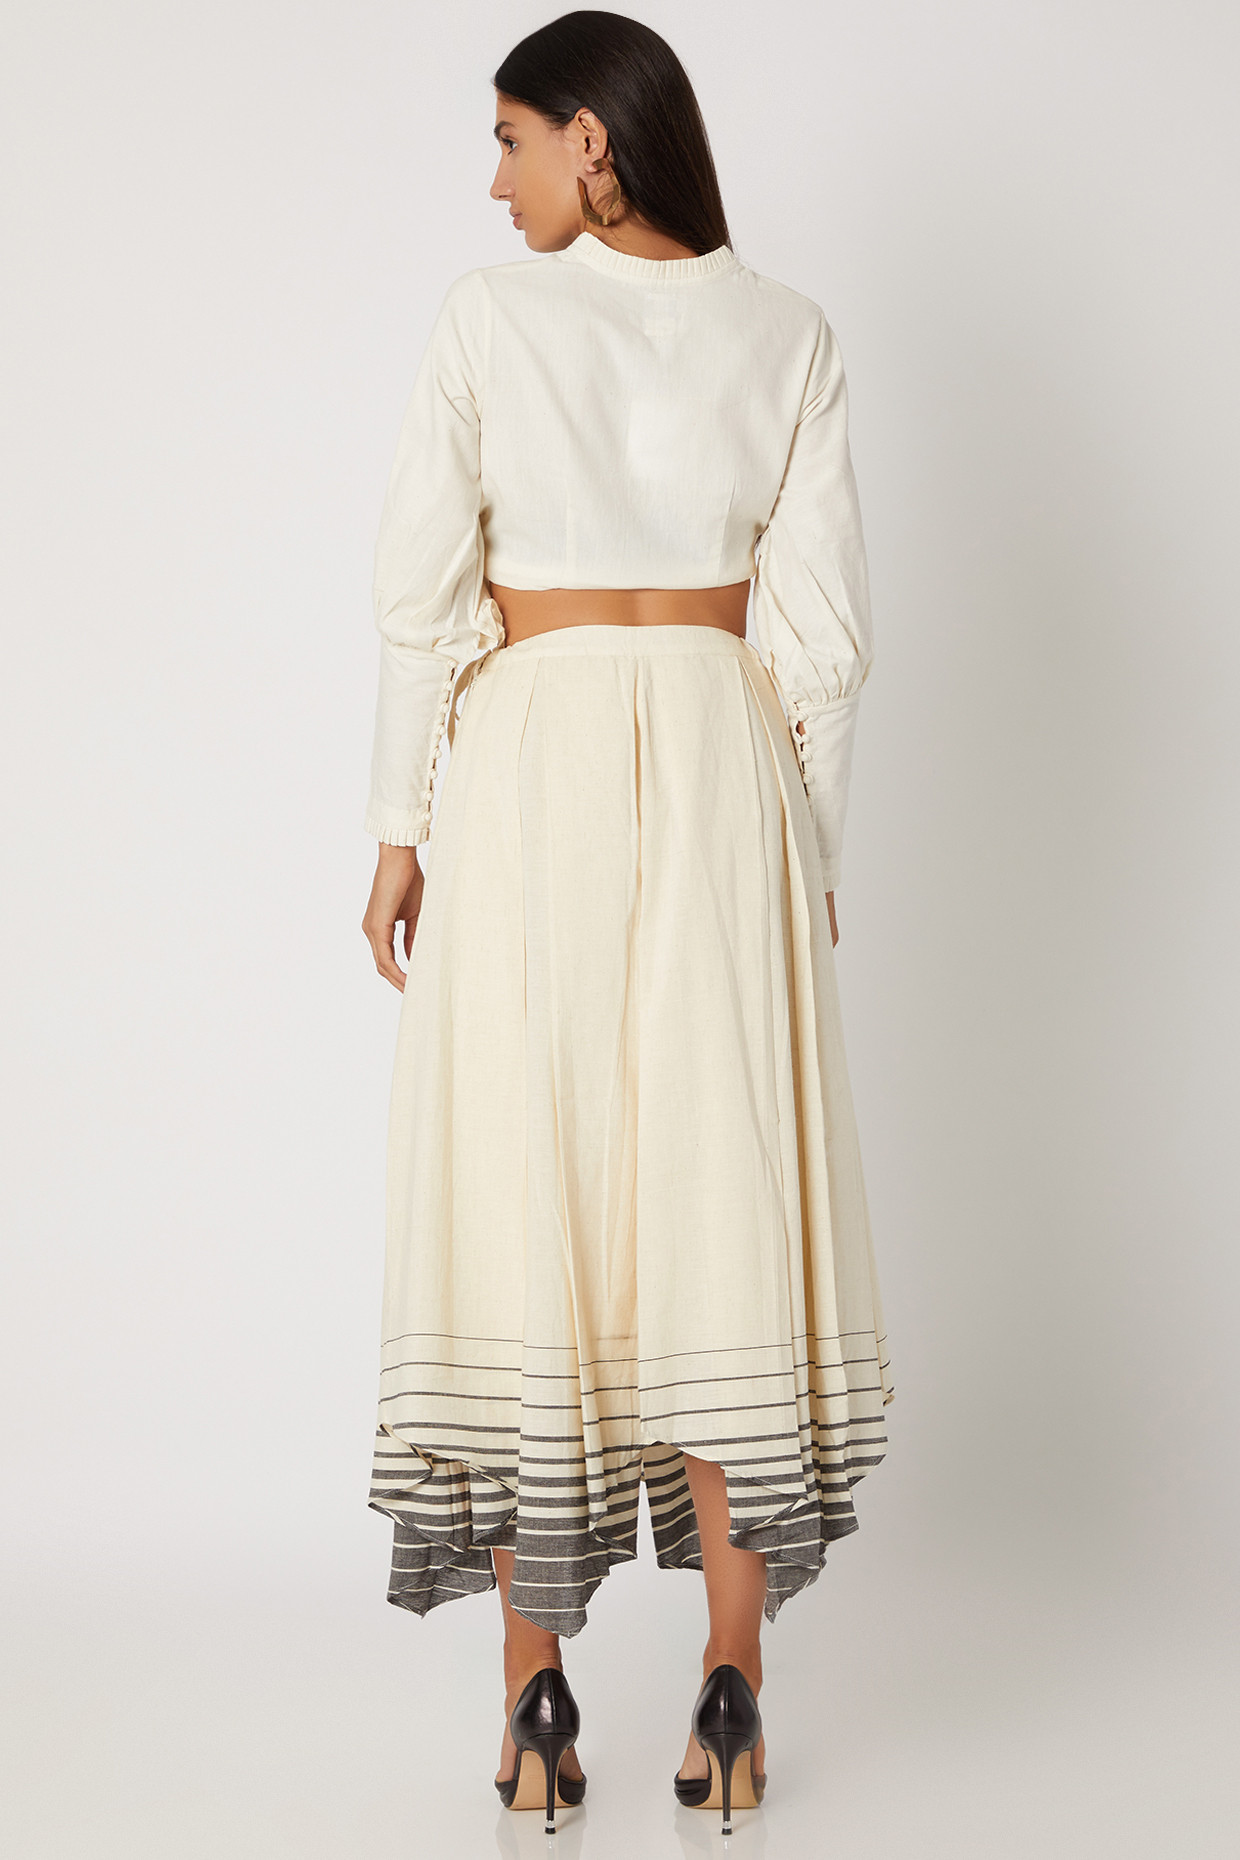 Off White Handkerchief Skirt With Pleats by Avadh